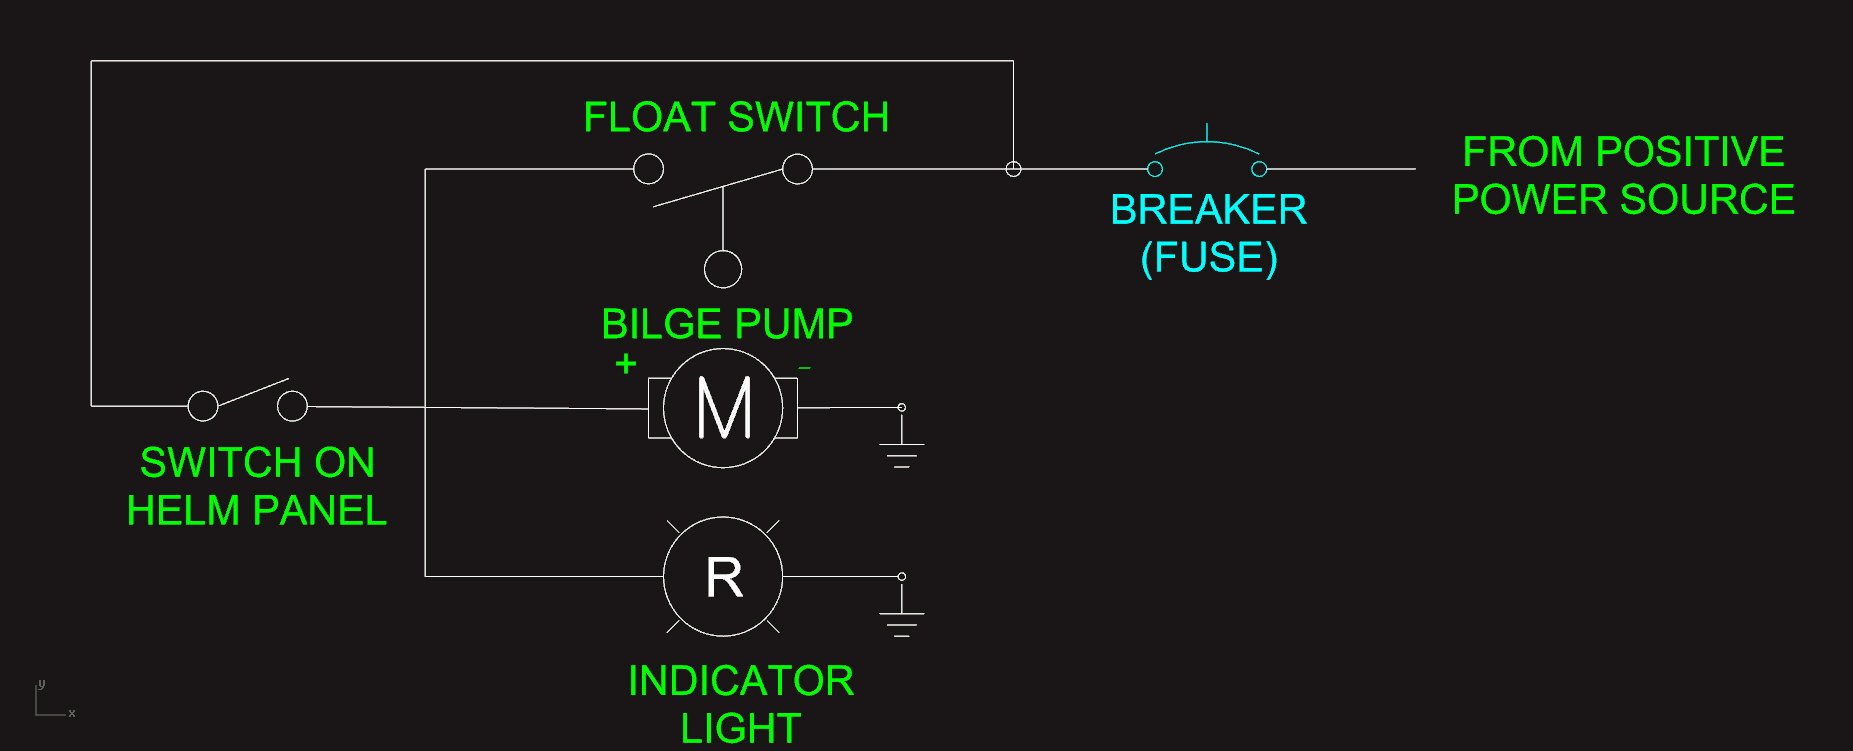 Bilge Pump Switch  How To Do It Like This  I Think I Know